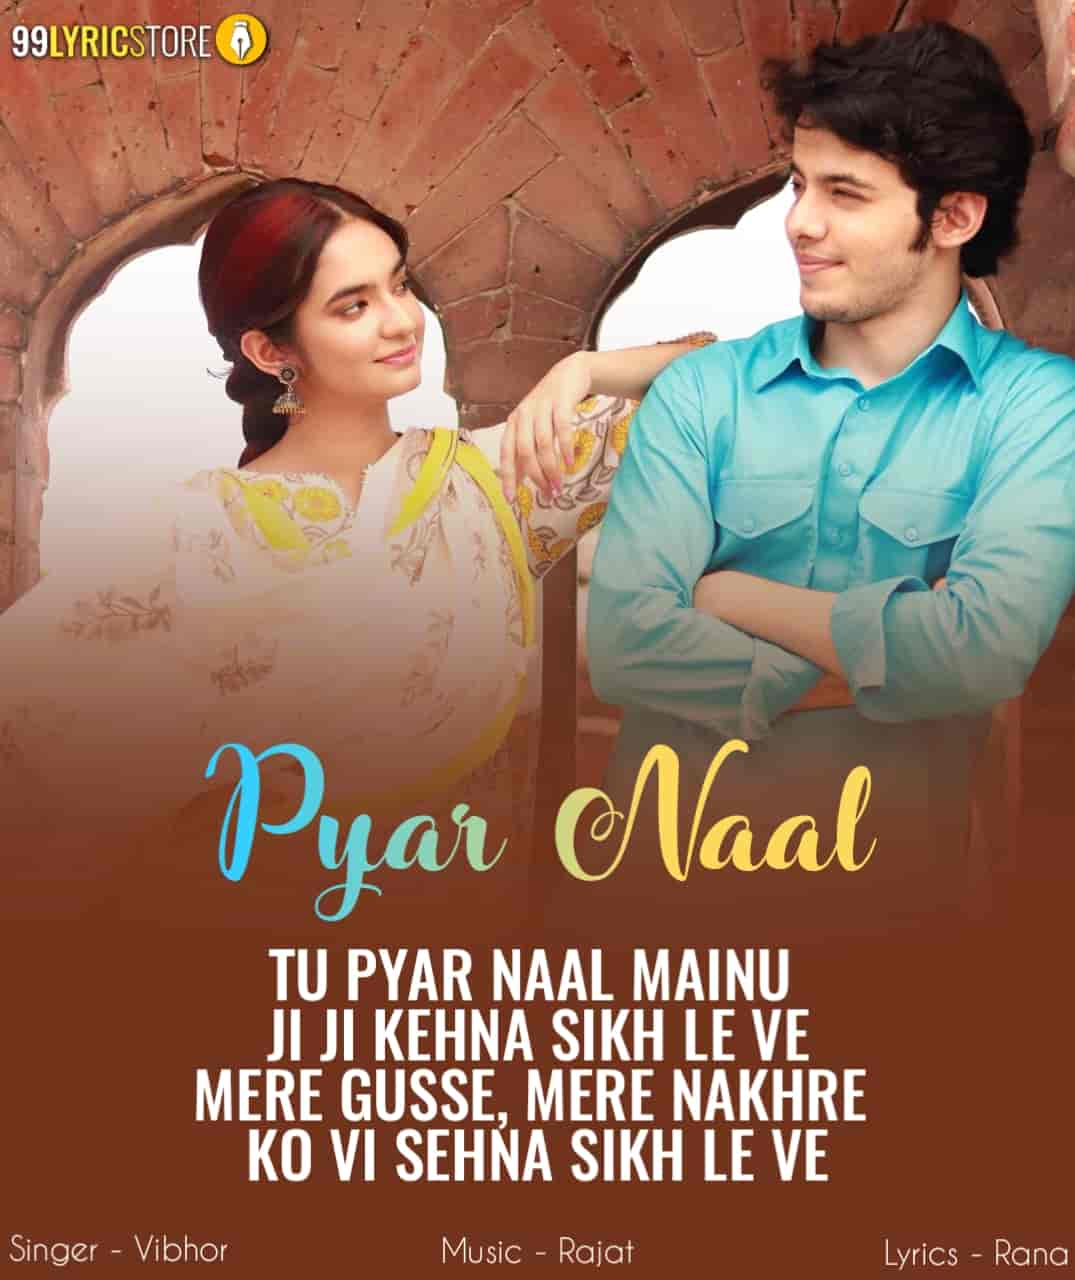 Pyar Naal Love Punjabi Song Written Image